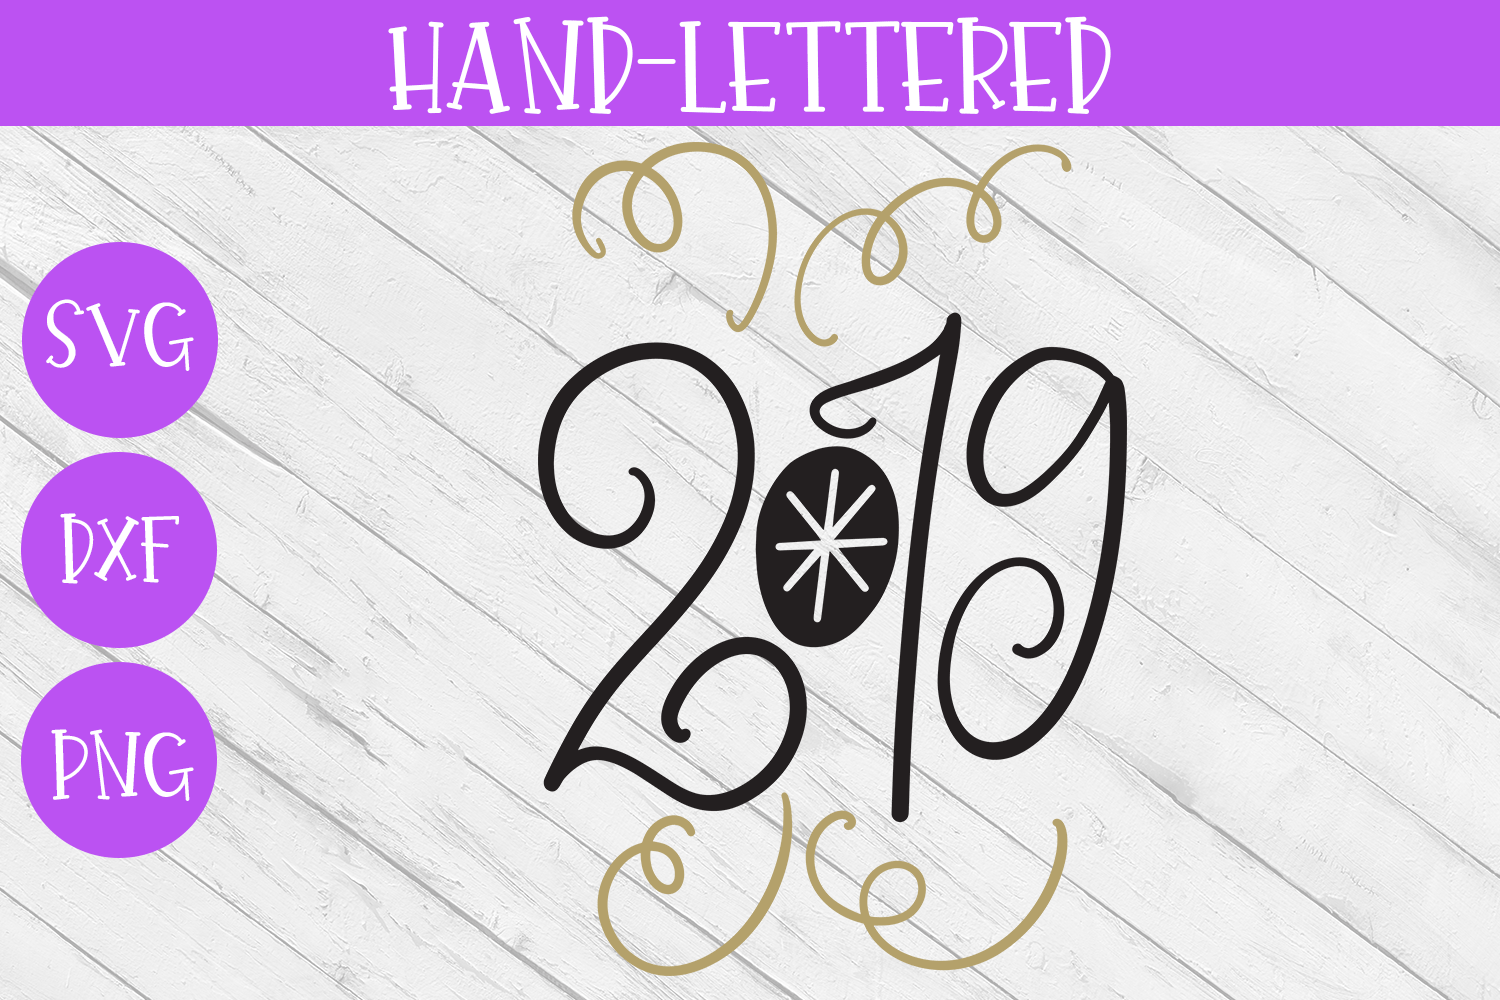 New Year SVG - 2019 Hand-Lettered Cut File example image 2